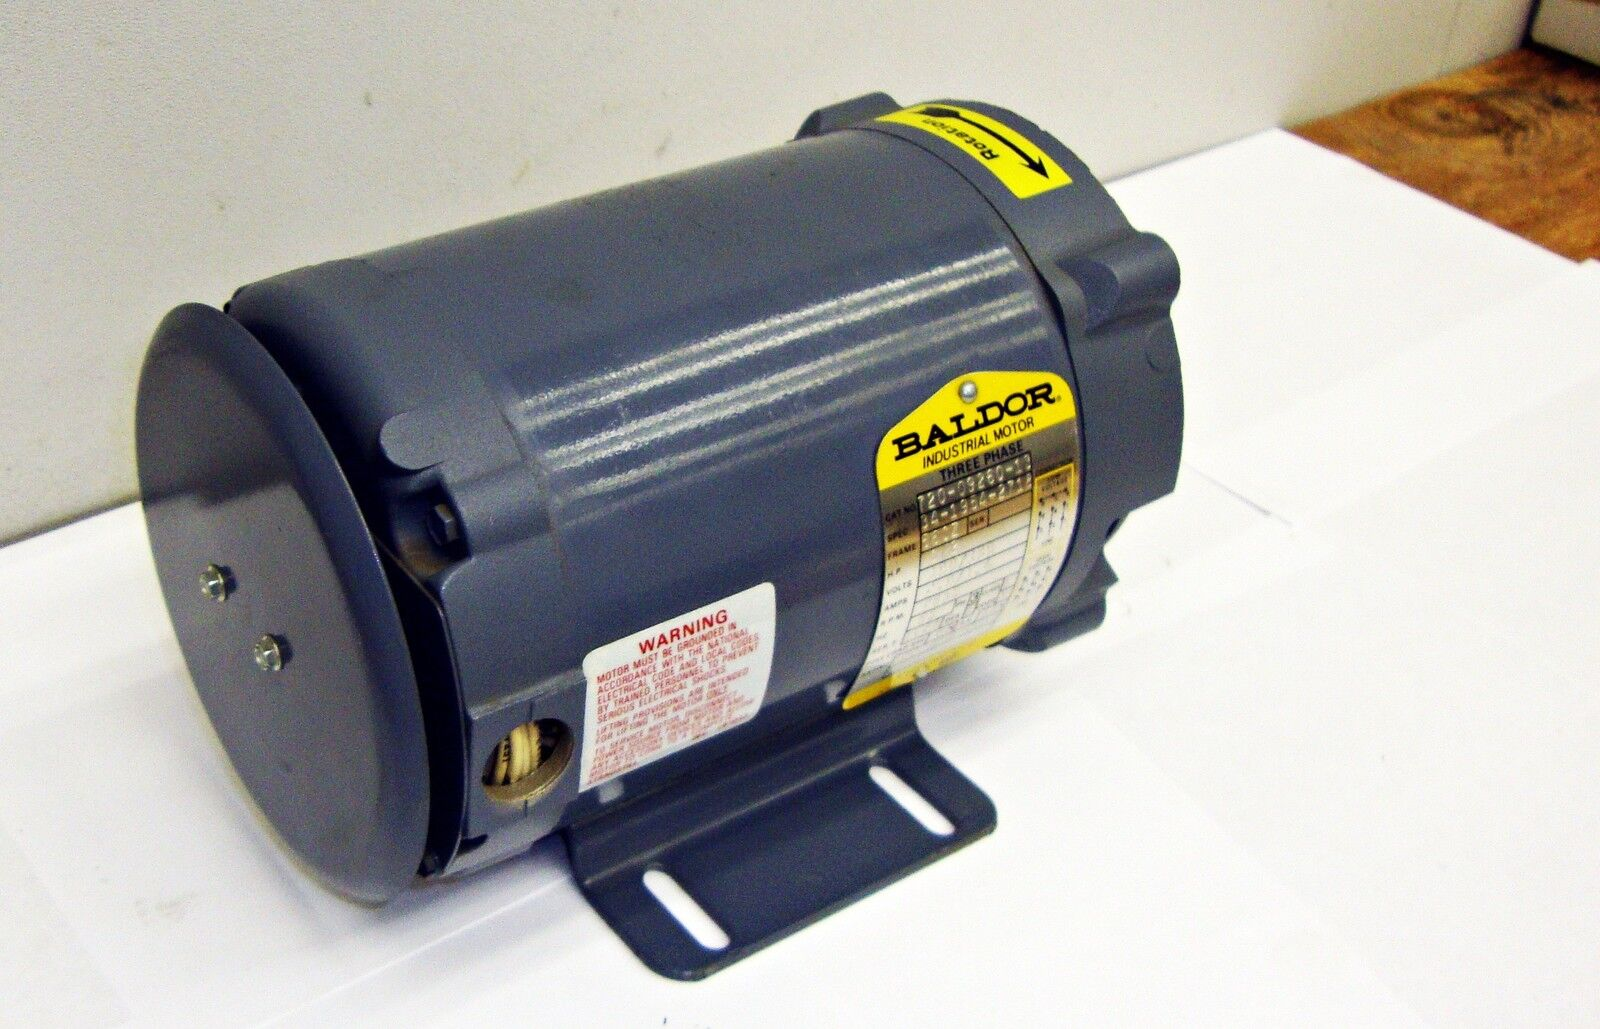 Sls1b12 New Baldor Industrial Electric Motor 1 2 Hp Cat